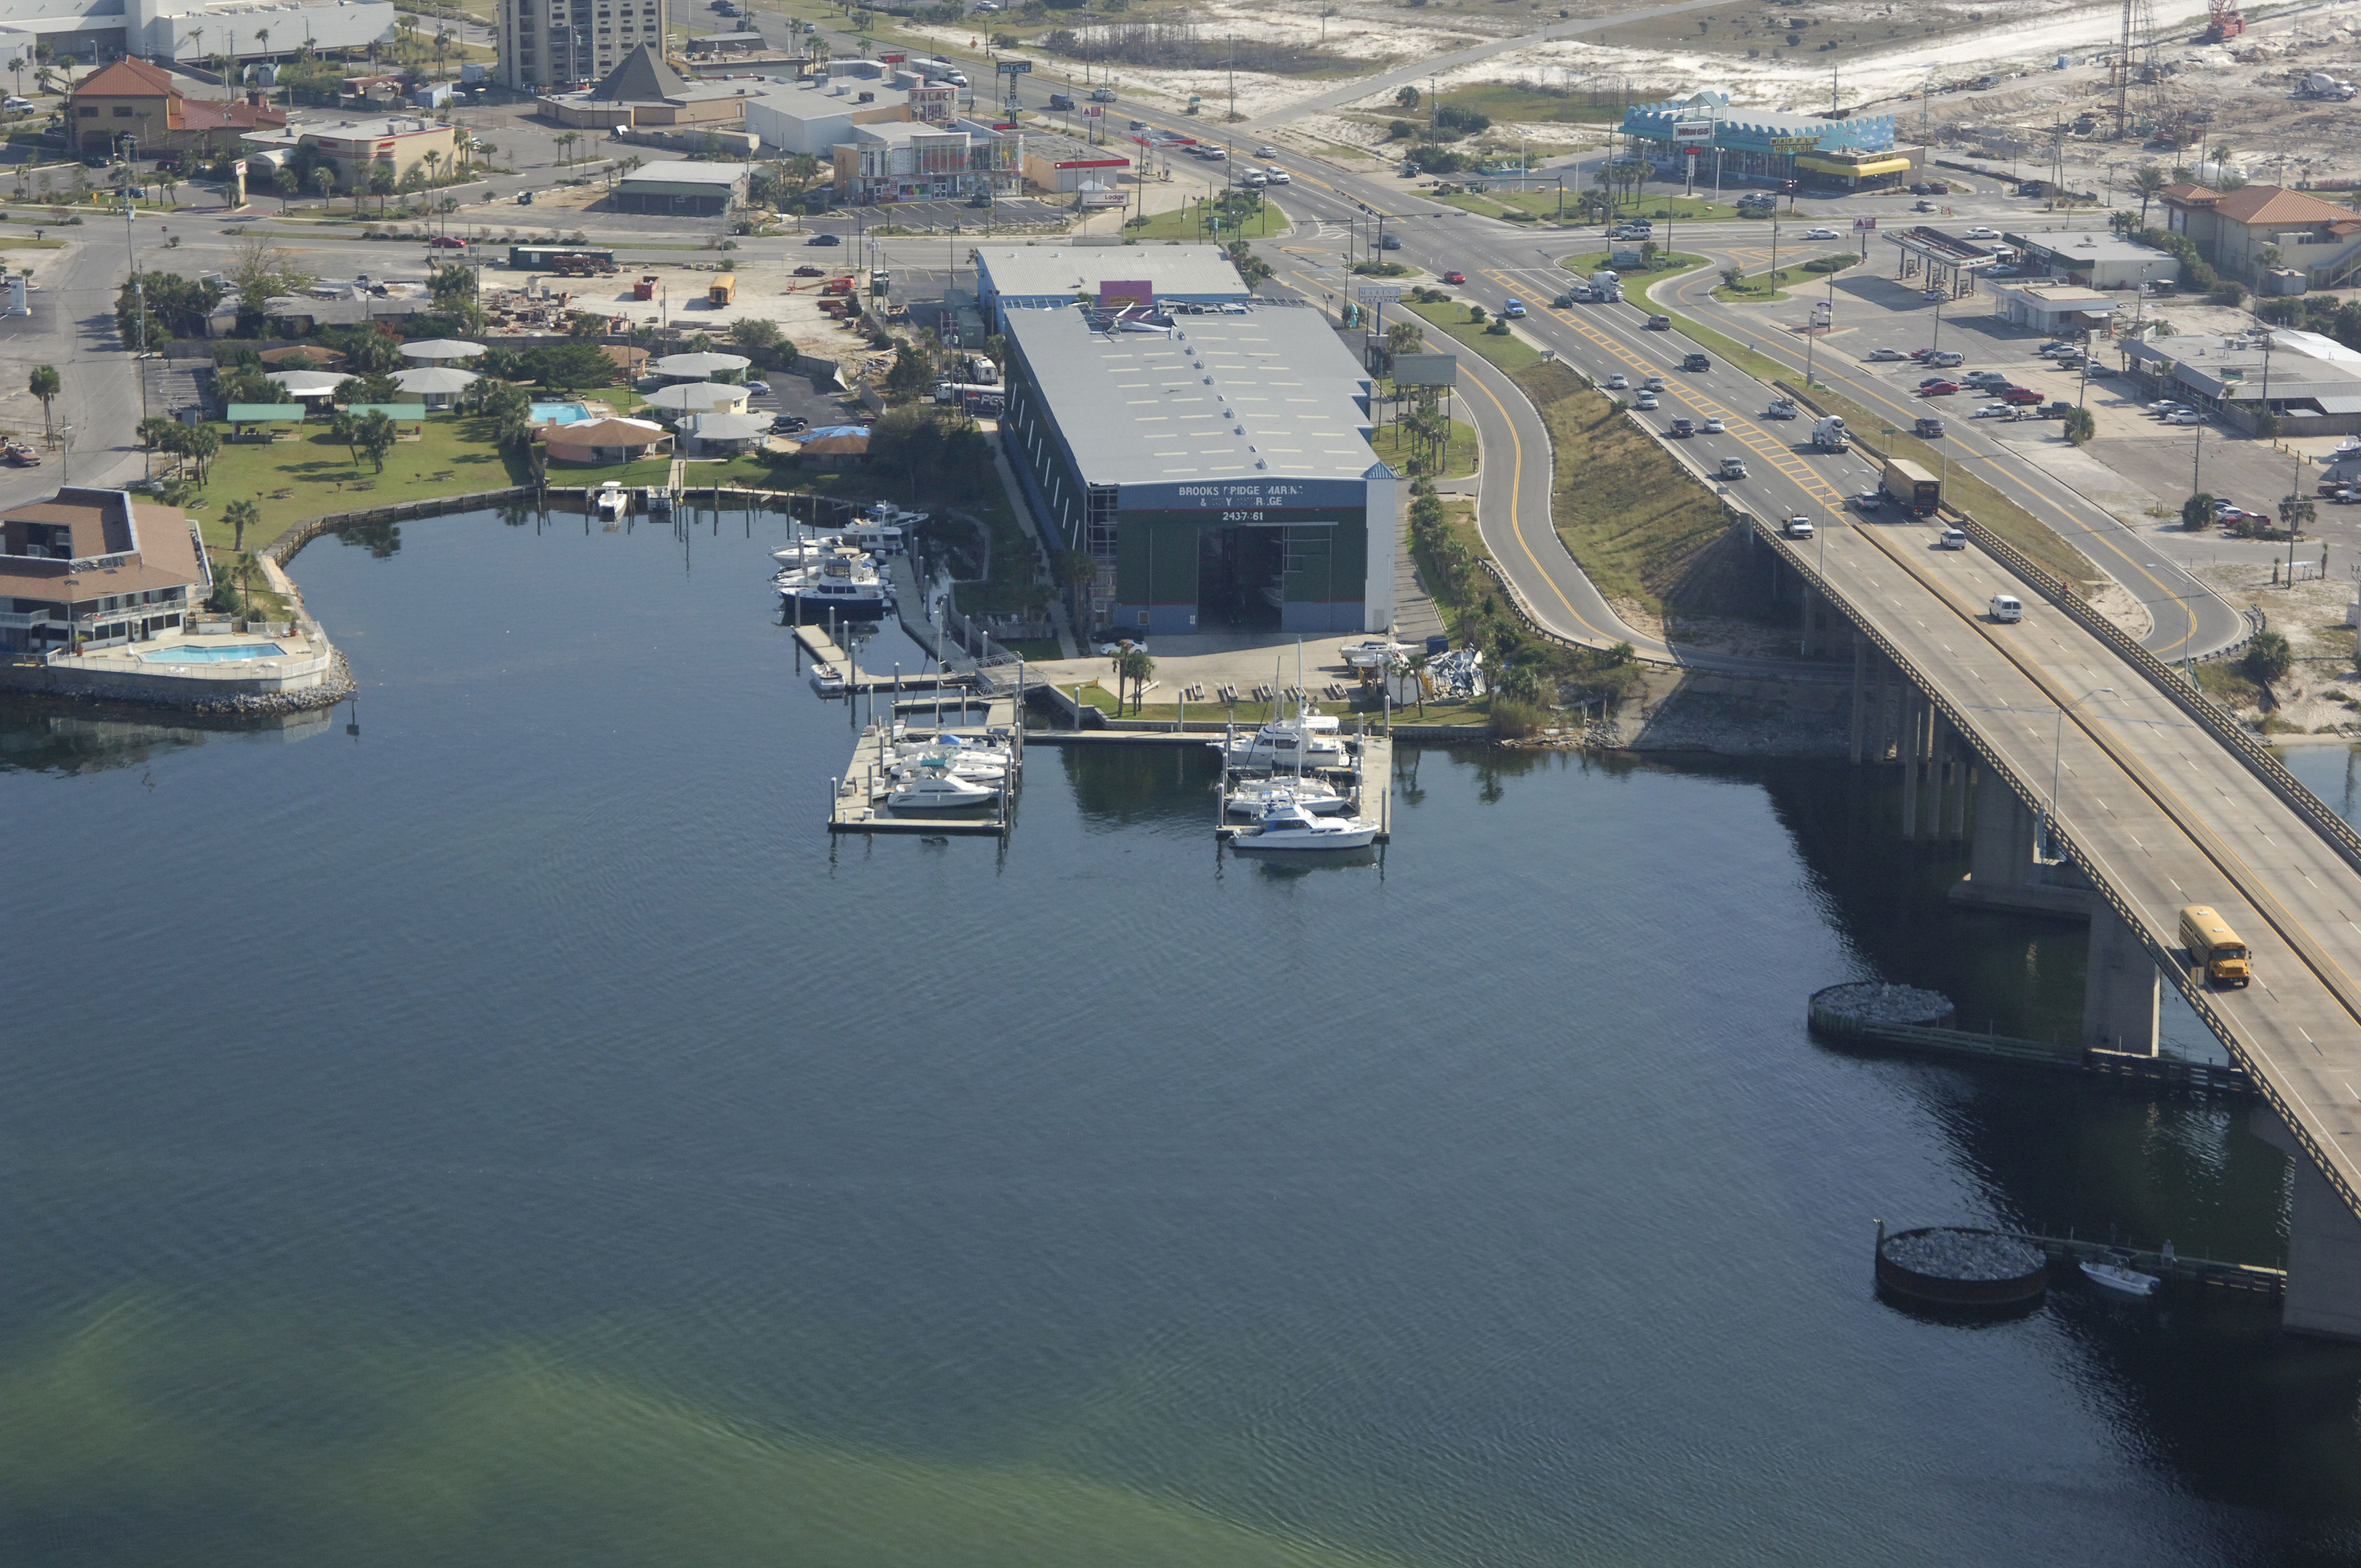 Brooks Bridge Marina Amp Dry Storage In Fort Walton Bch Fl